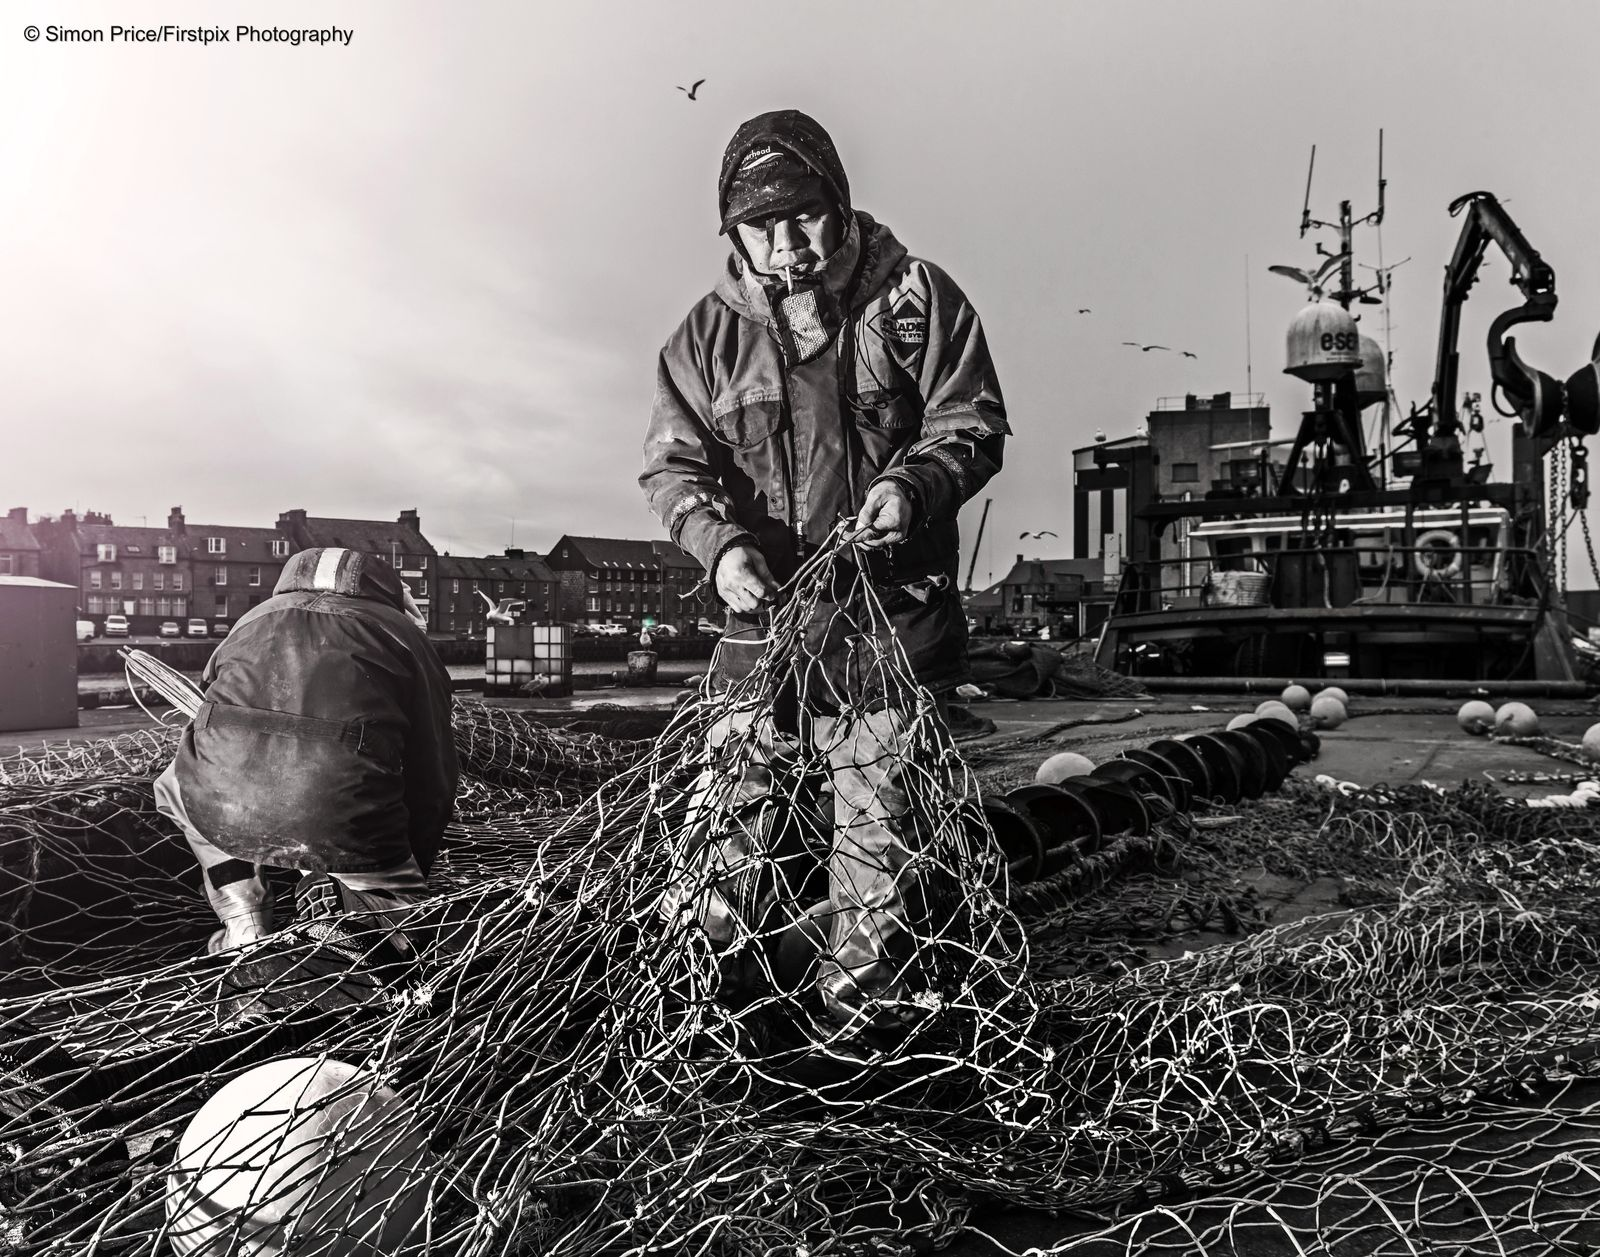 Nets fish fishing north sea